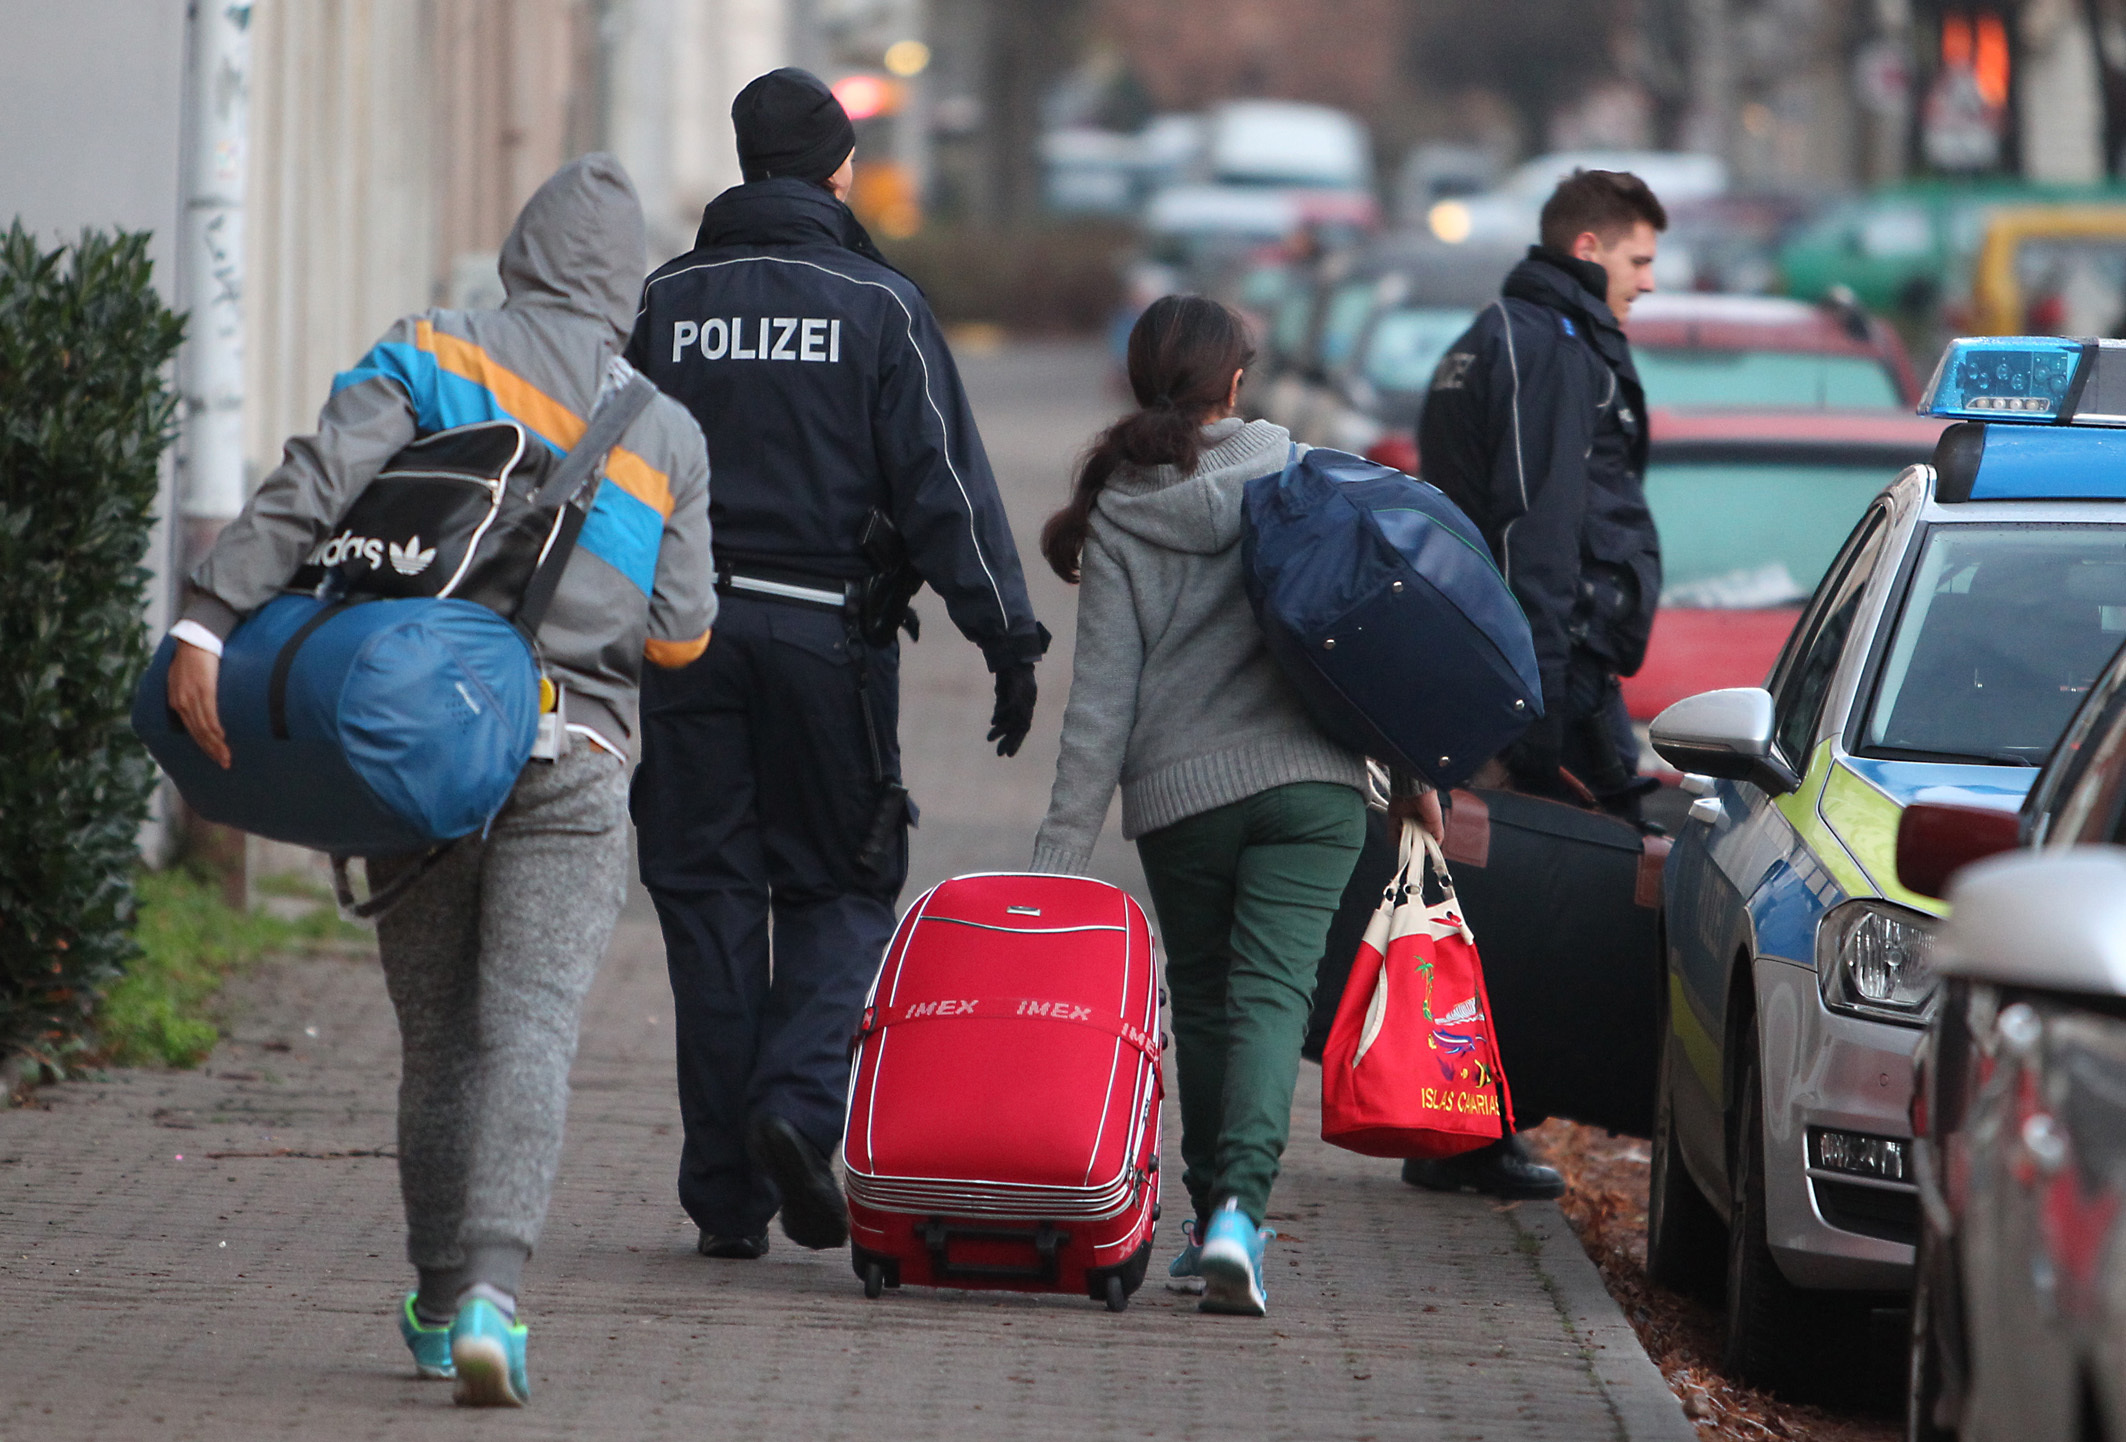 German police bringing refugees back to the airport